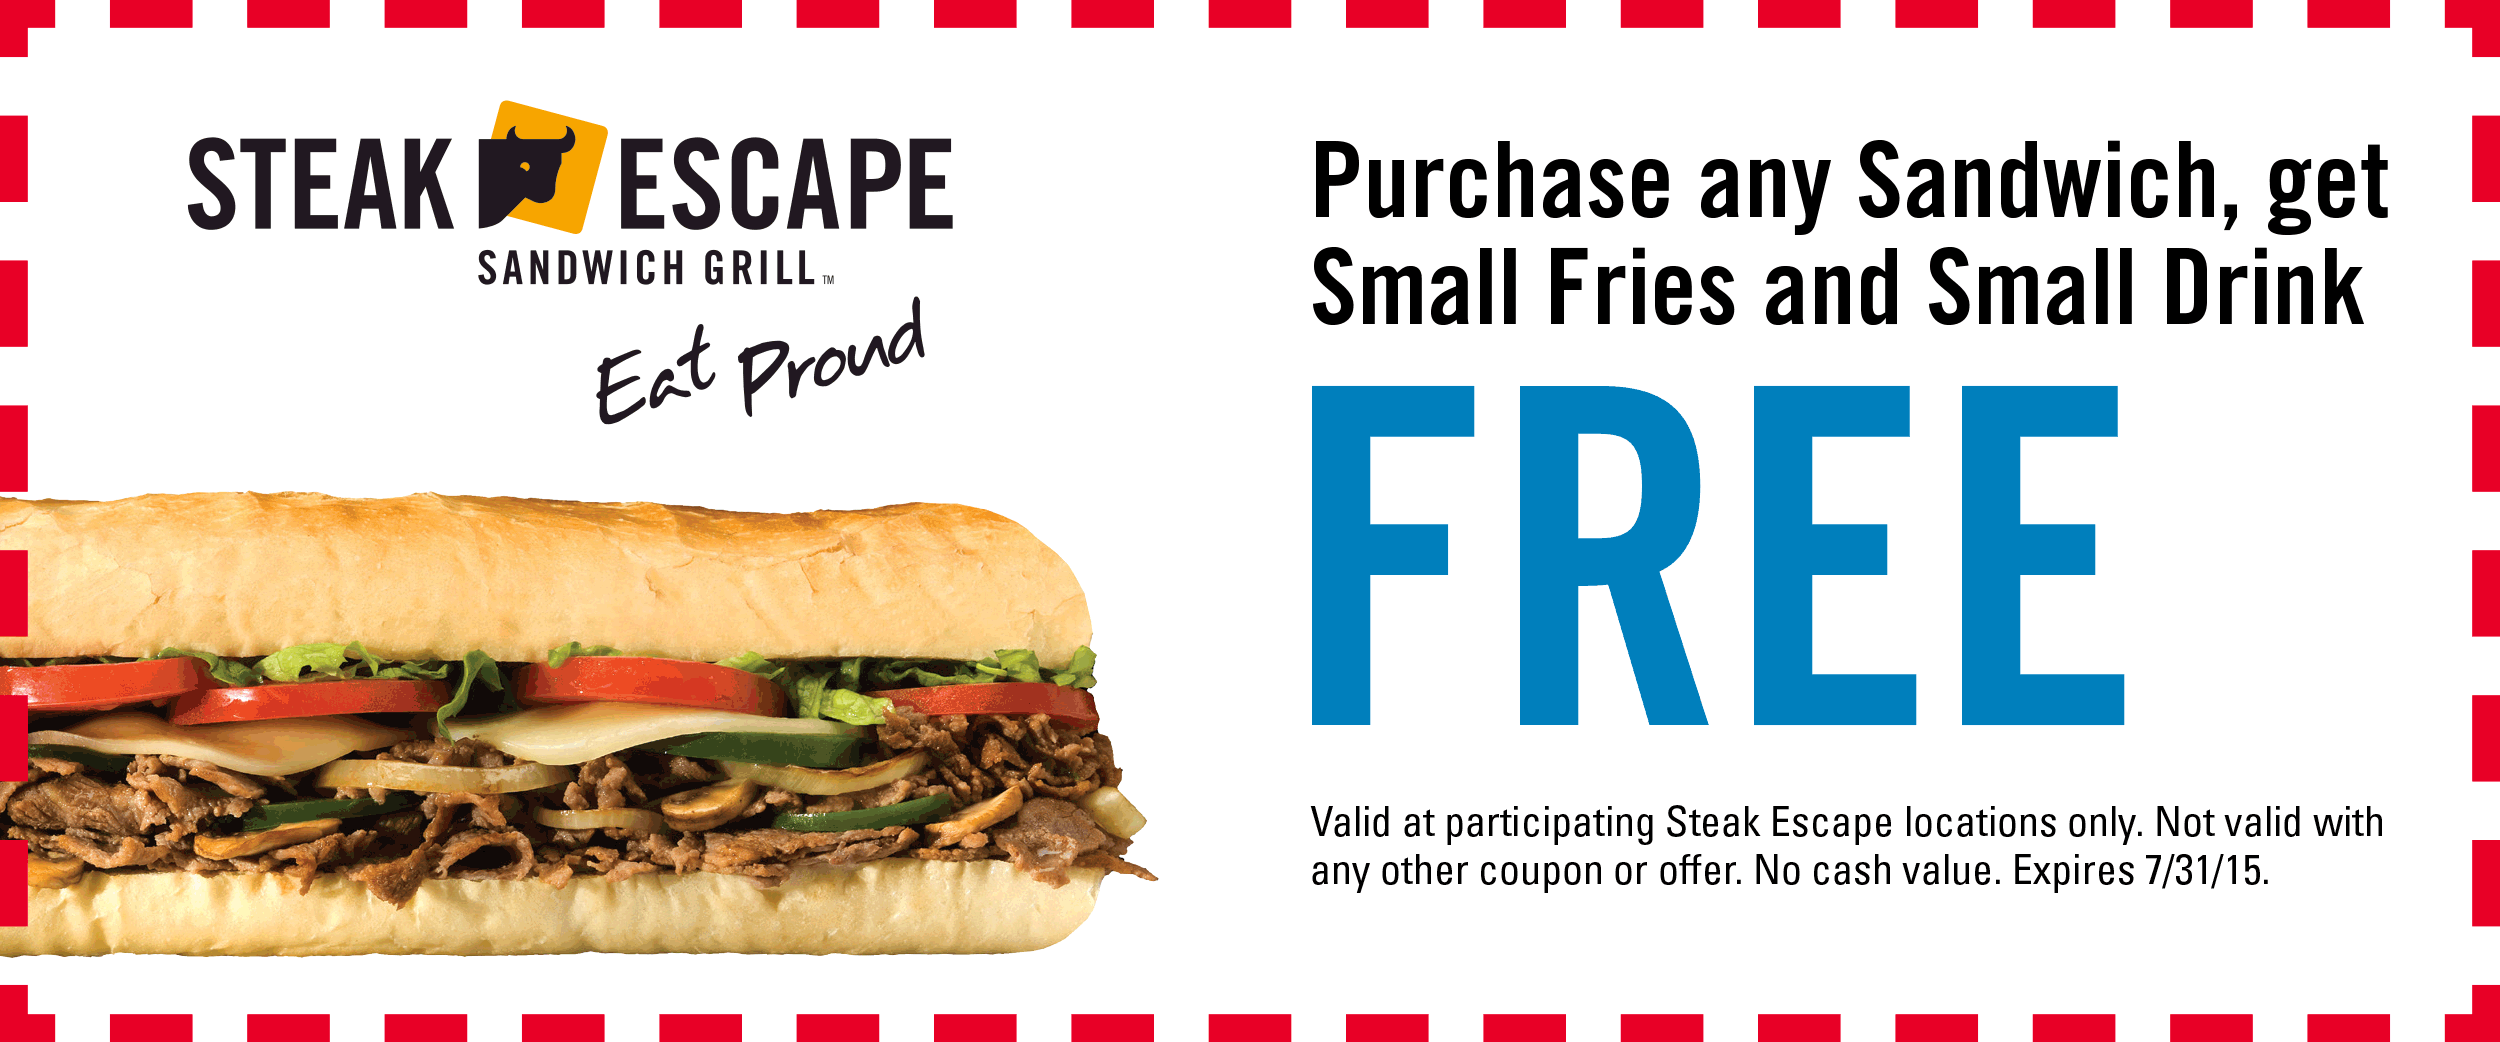 Steak Escape Coupon March 2017 Free fries & drink with your sandwich at Steak Escape grill